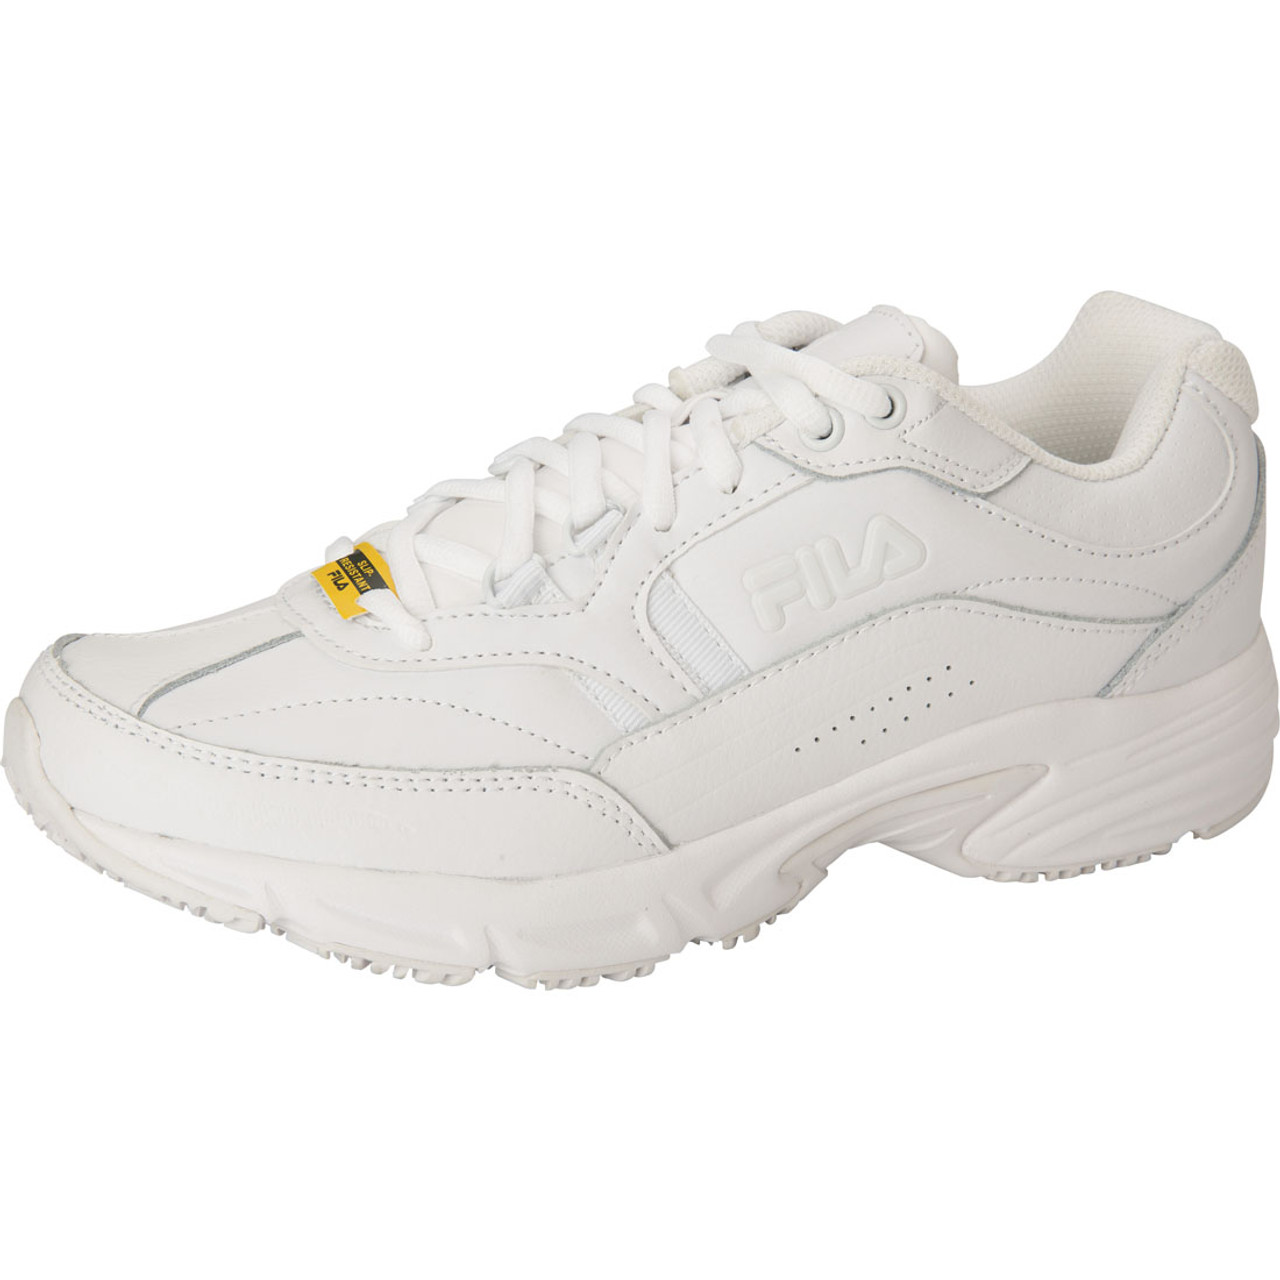 (WORKSHIFT) Fila - WORKSHIFT SR Athletic Footwear